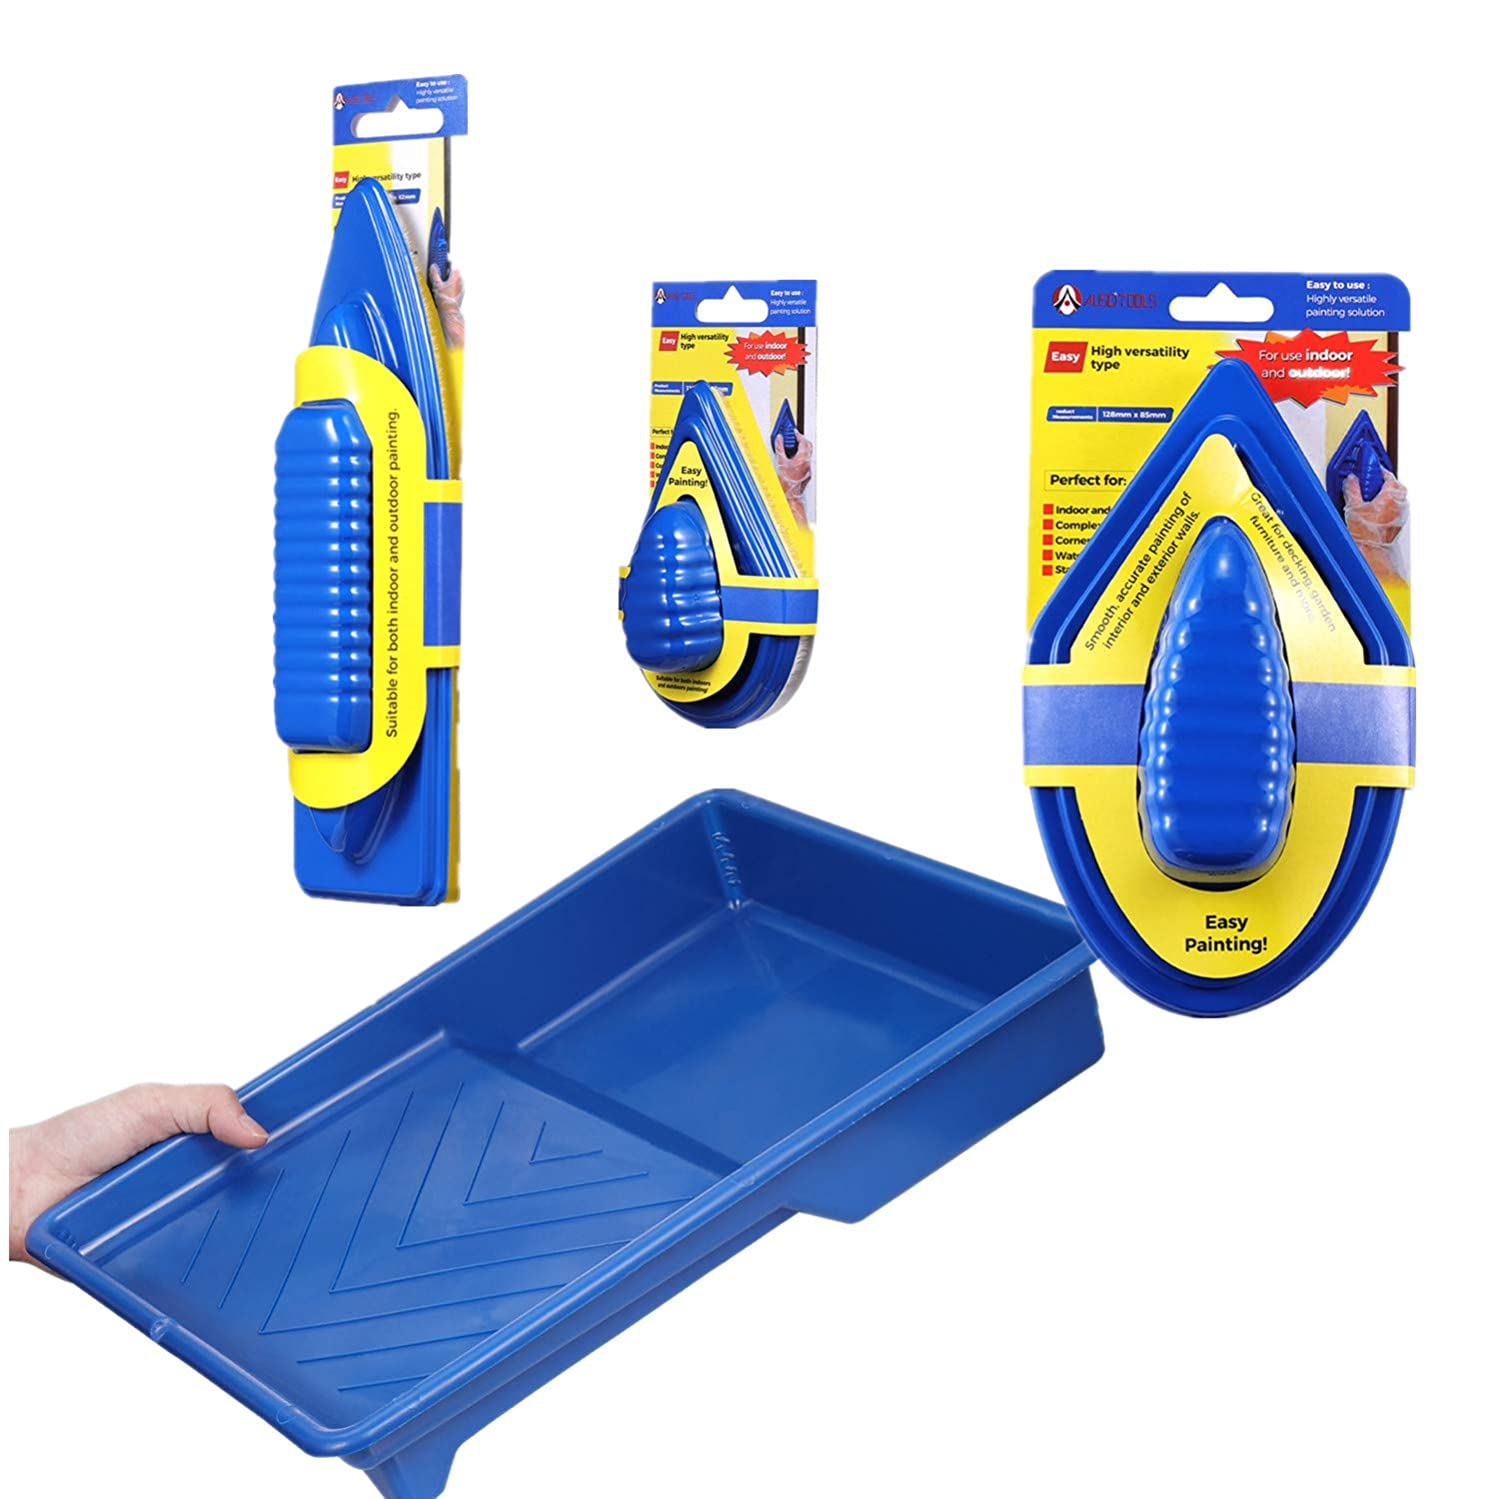 YUKAKI The Best Paint Pad Set with 9 Inch Painting Tray No Smudges No Drips Paint Edger Painting More Accurate Than Paint Roller and Paint Brush House Paint Kit